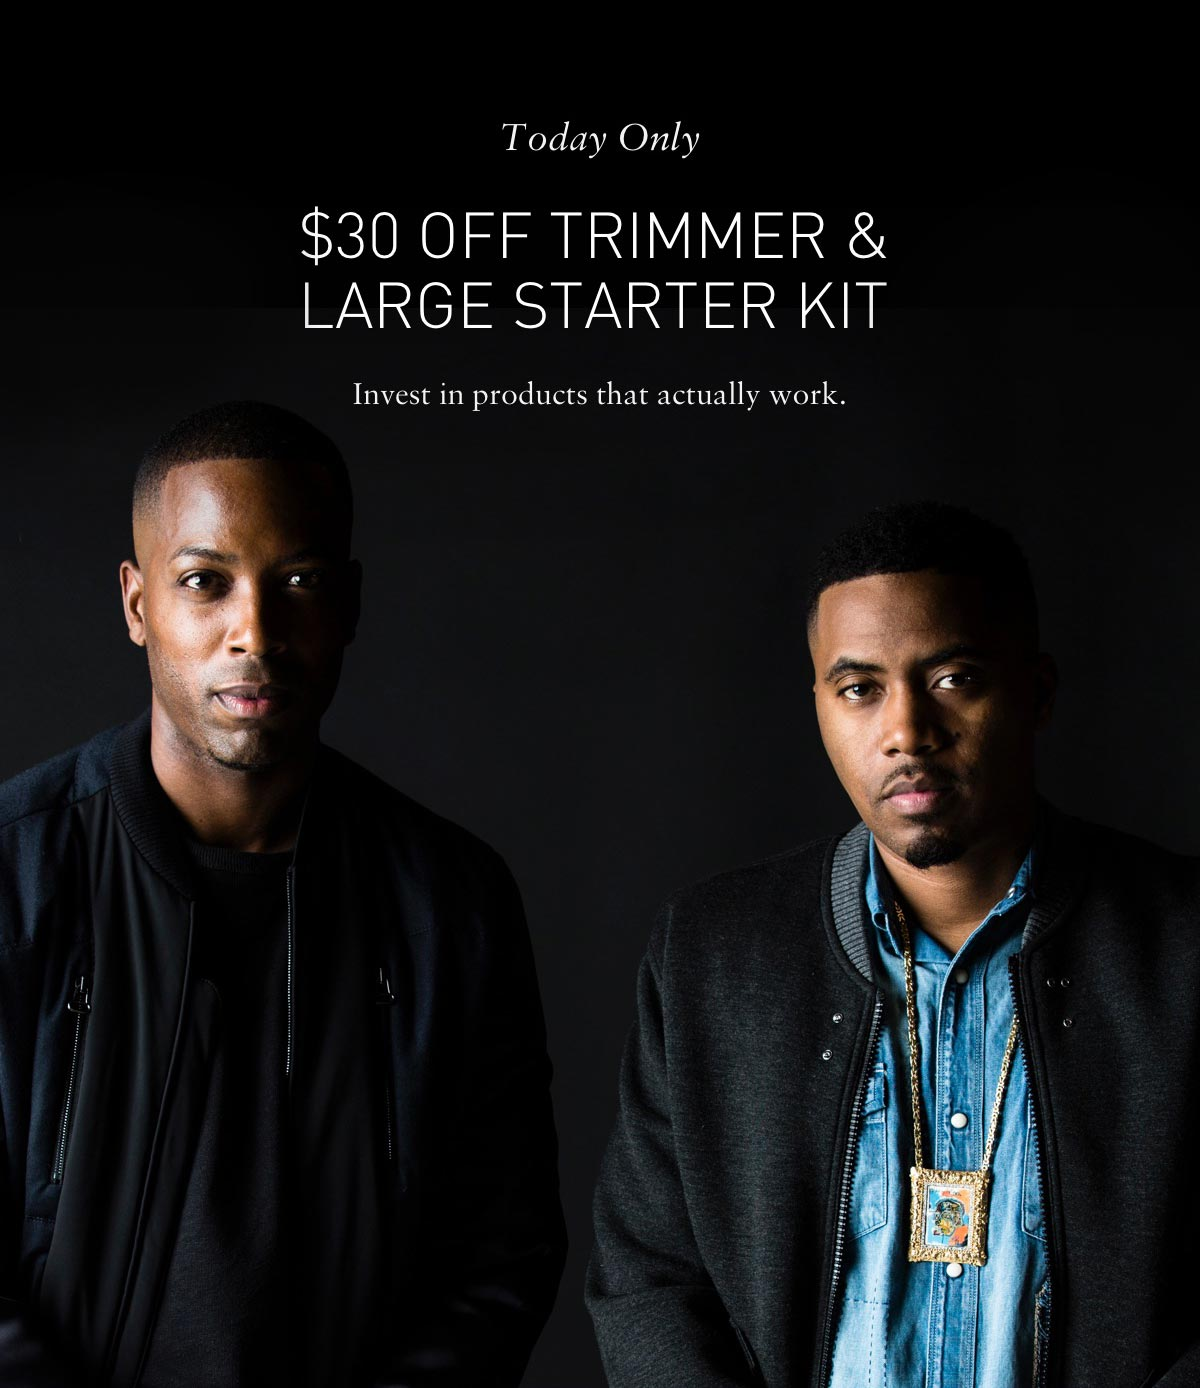 Today only $30 off trimmer & large starter kit